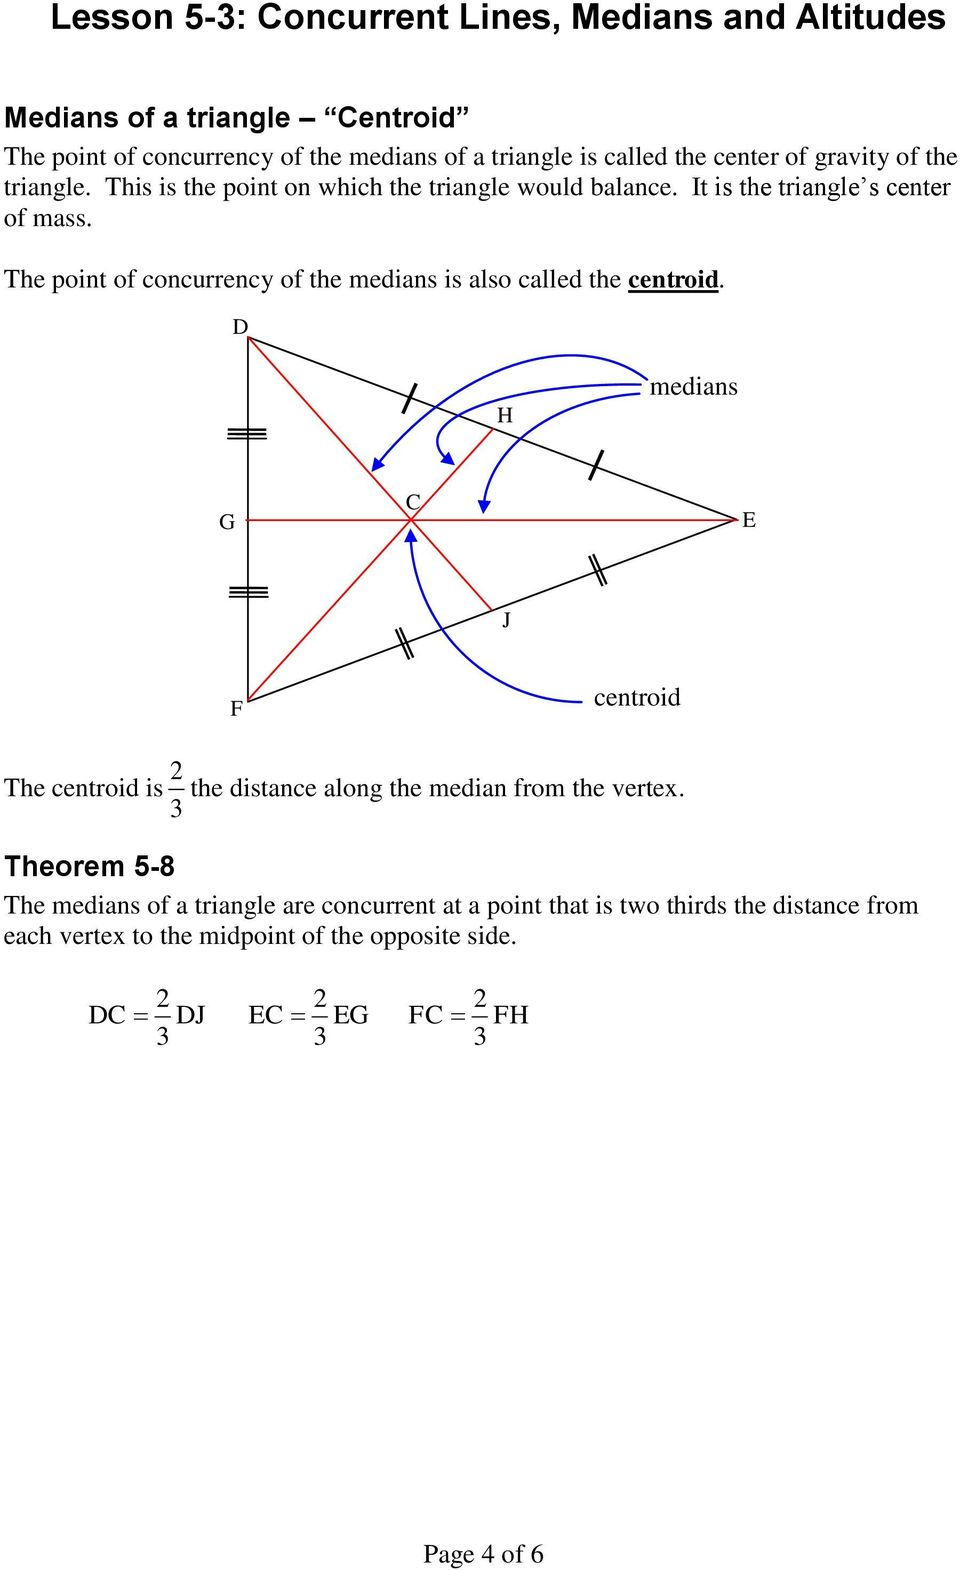 Lesson 22-22: Concurrent Lines, Medians and Altitudes - PDF Free With Regard To Points Of Concurrency Worksheet Answers